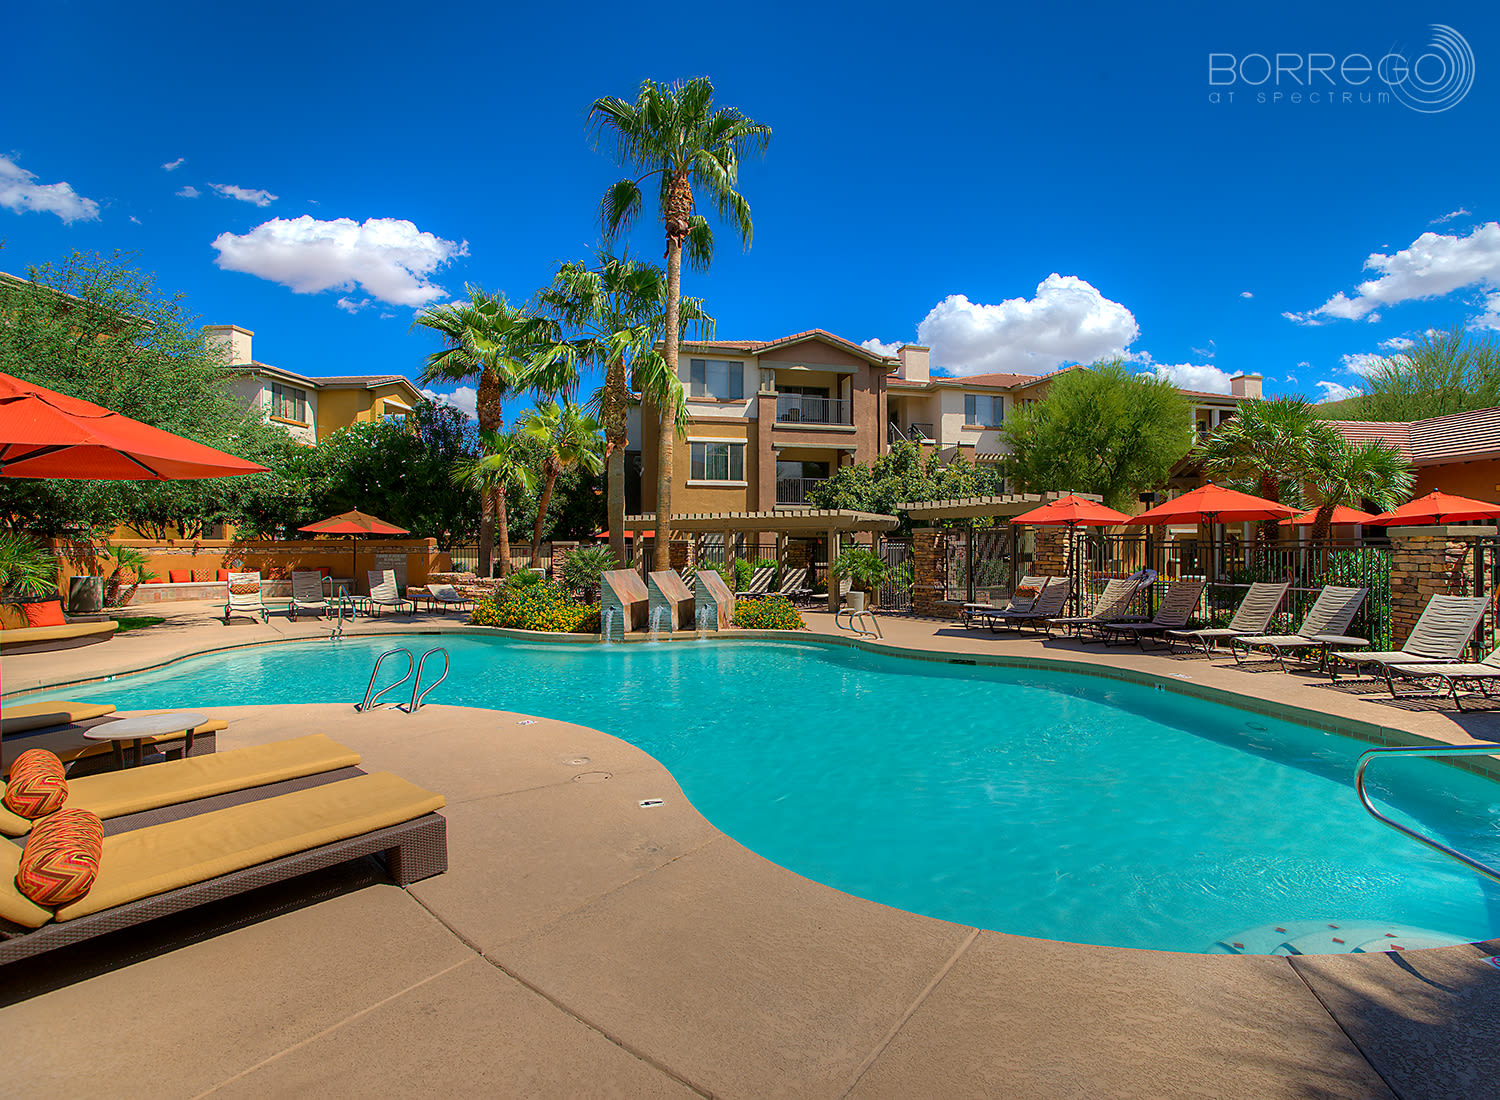 Borrego at Spectrum apartments in Gilbert, Arizona